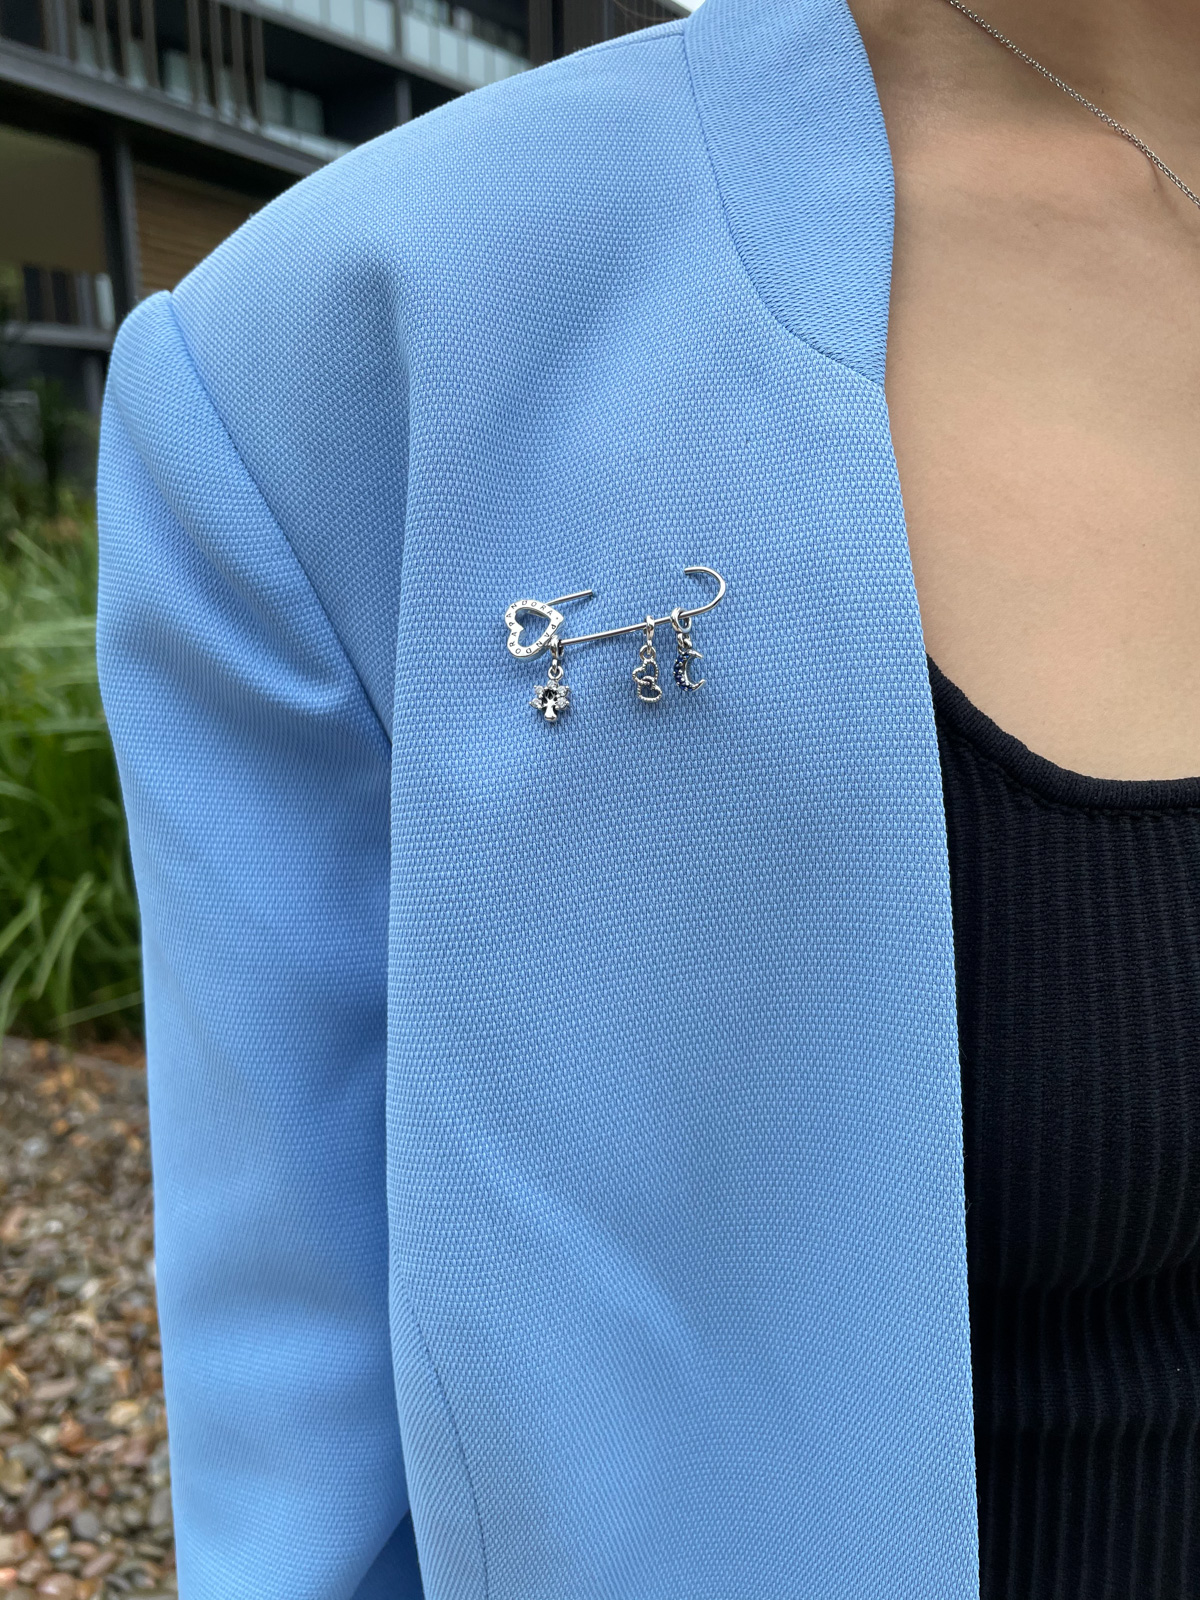 A close-up of the lapel of a woman's blue blazer. It has an adorned safety pin with three charms pinned on it: a tree; two hearts; and a moon. The tree and moon are adorned with rhinestones